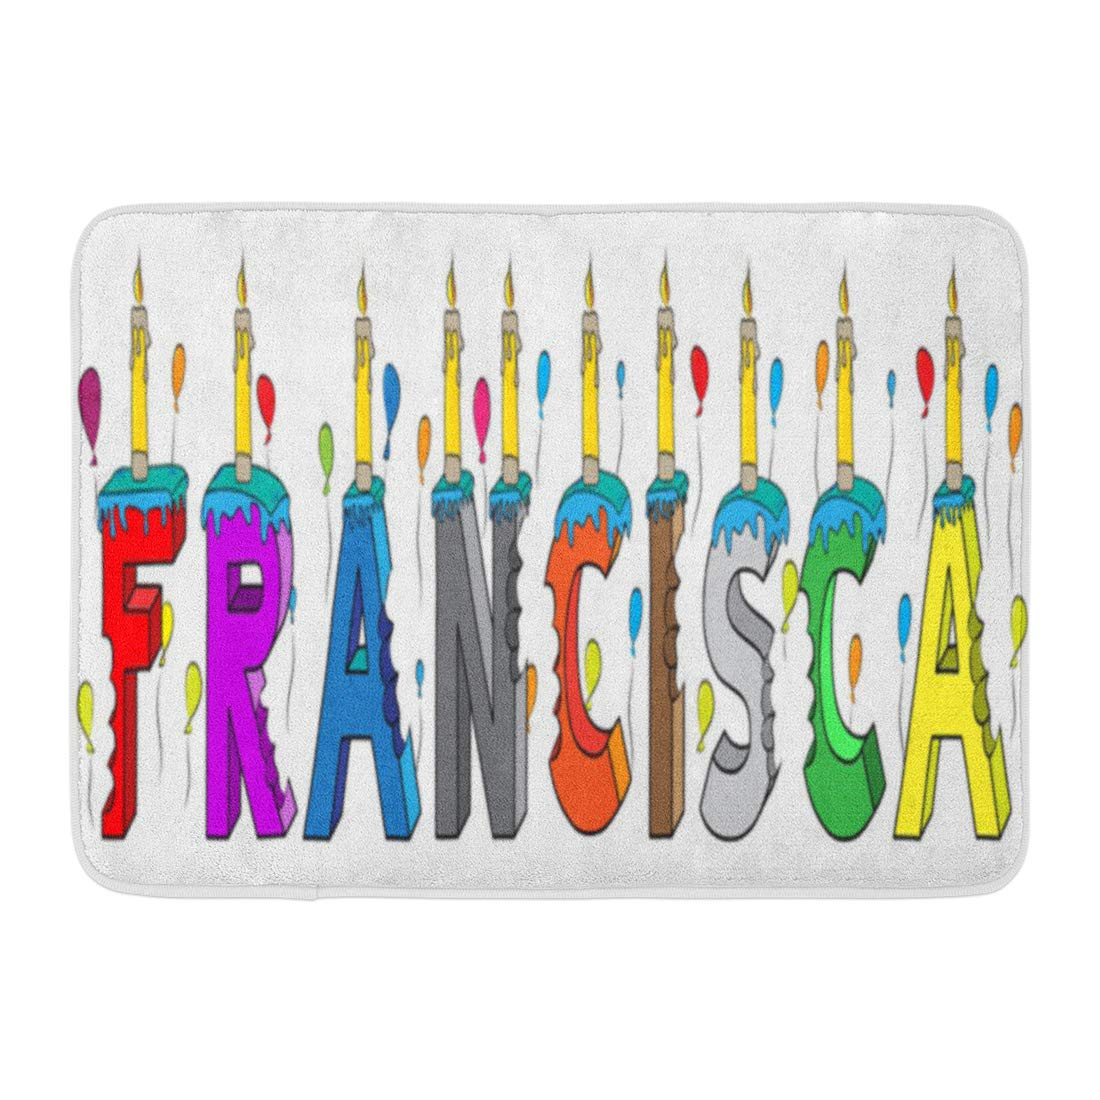 Godpok Alphabet Francisca First Name Bitten Colorful 3d Lettering Birthday Cake With Candles And Balloons Rug Doormat Bath Mat 23 6x15 7 Inch